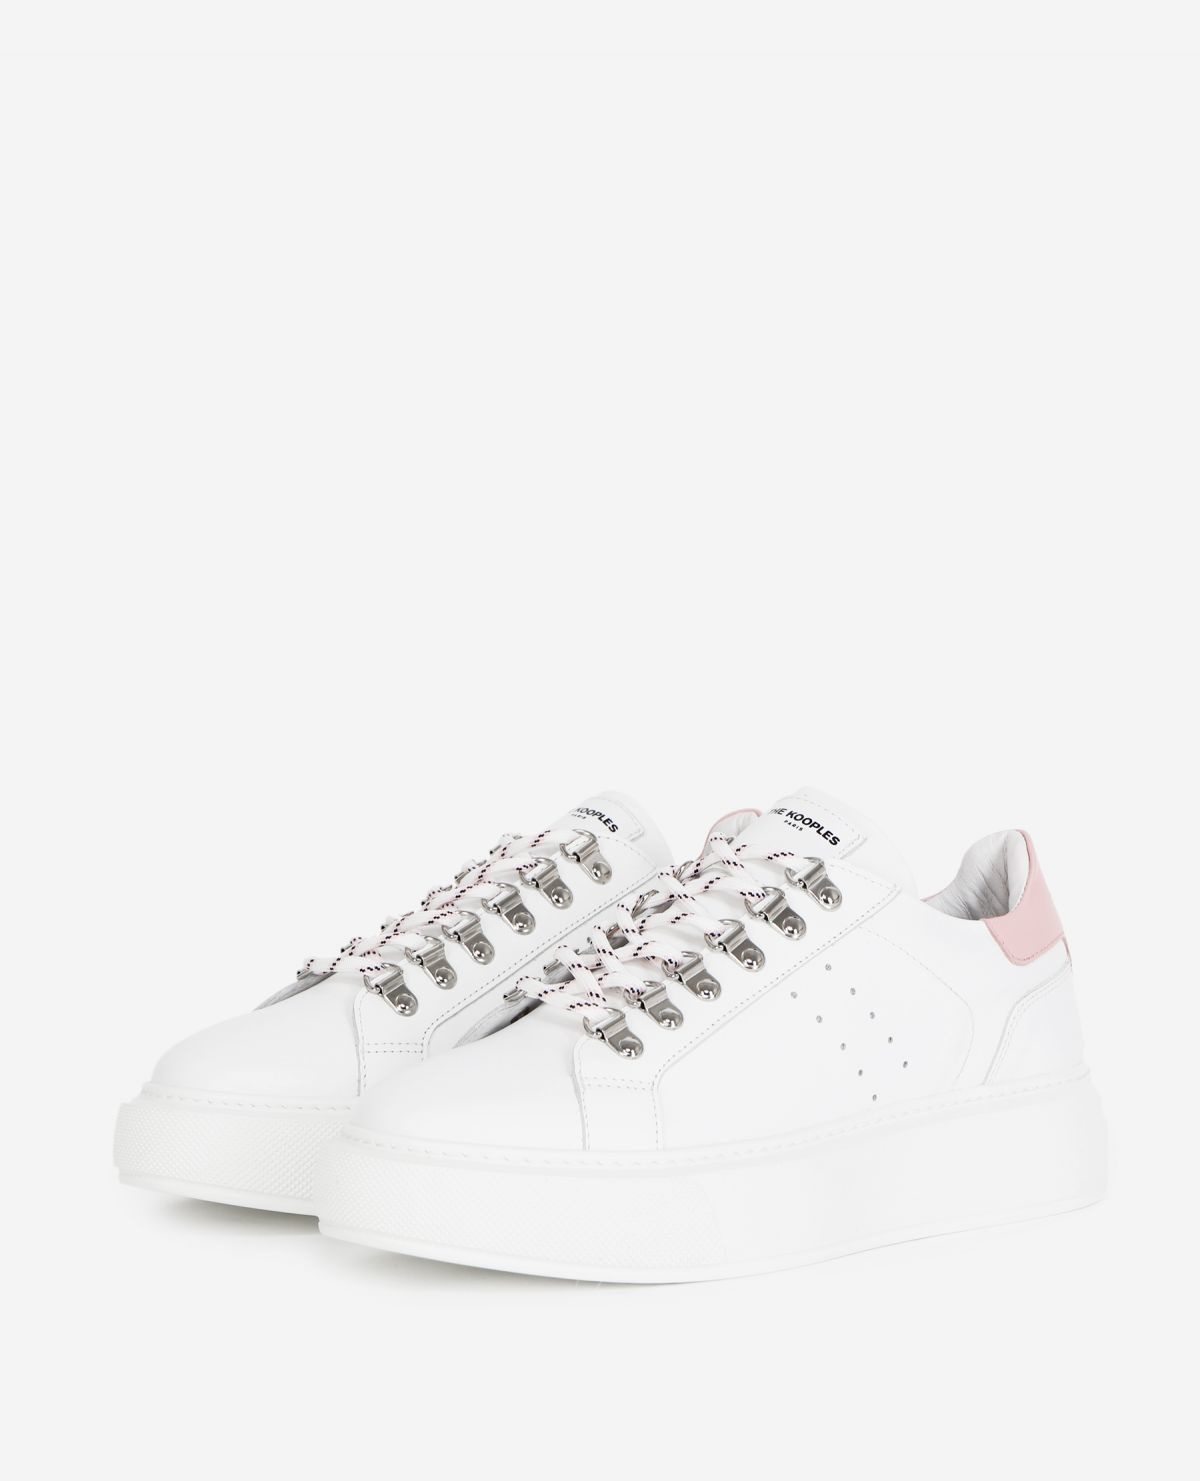 THE KOOPLES  baskets cuir blanches-2